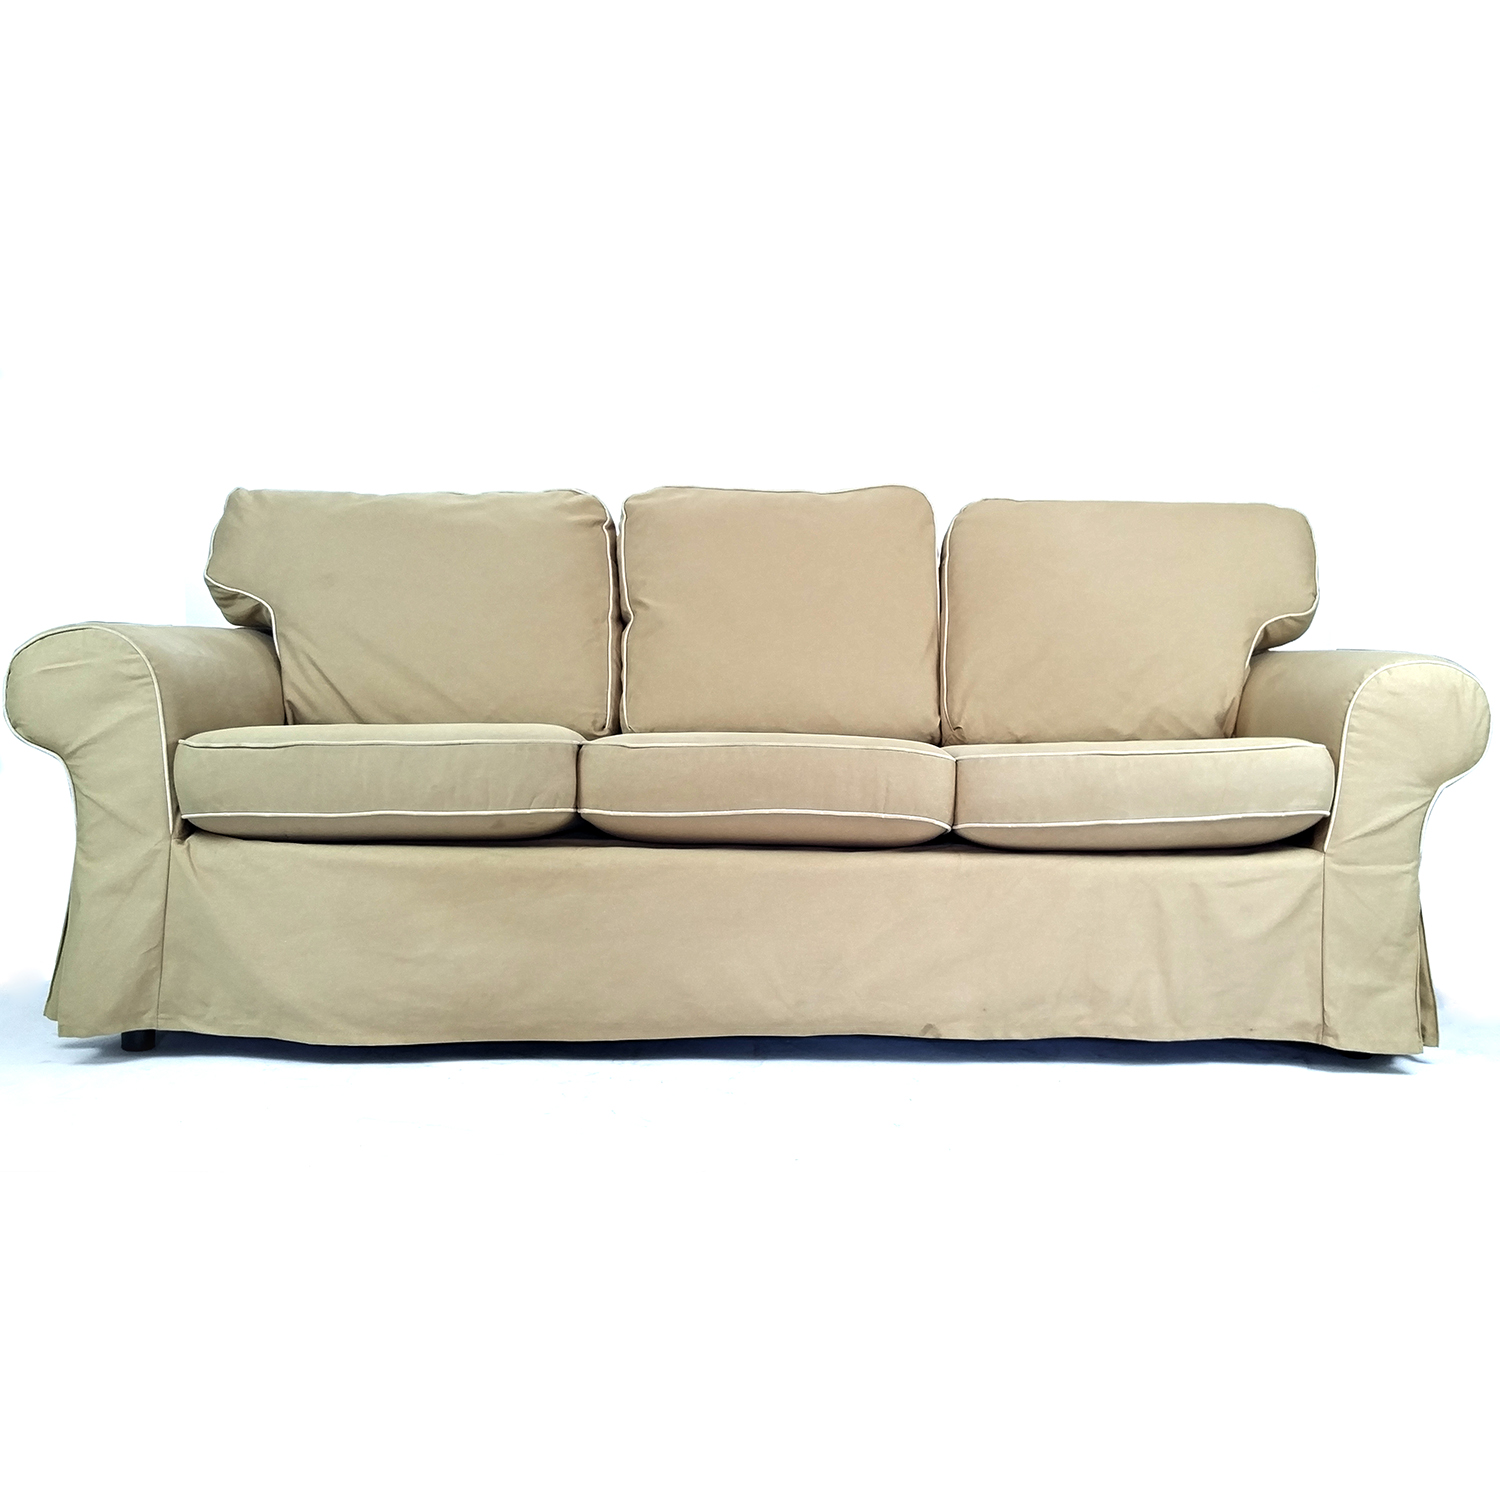 Love Sofa Moooi Canvas Sofa Indoor Outdoor Furniture Made From Salvaged